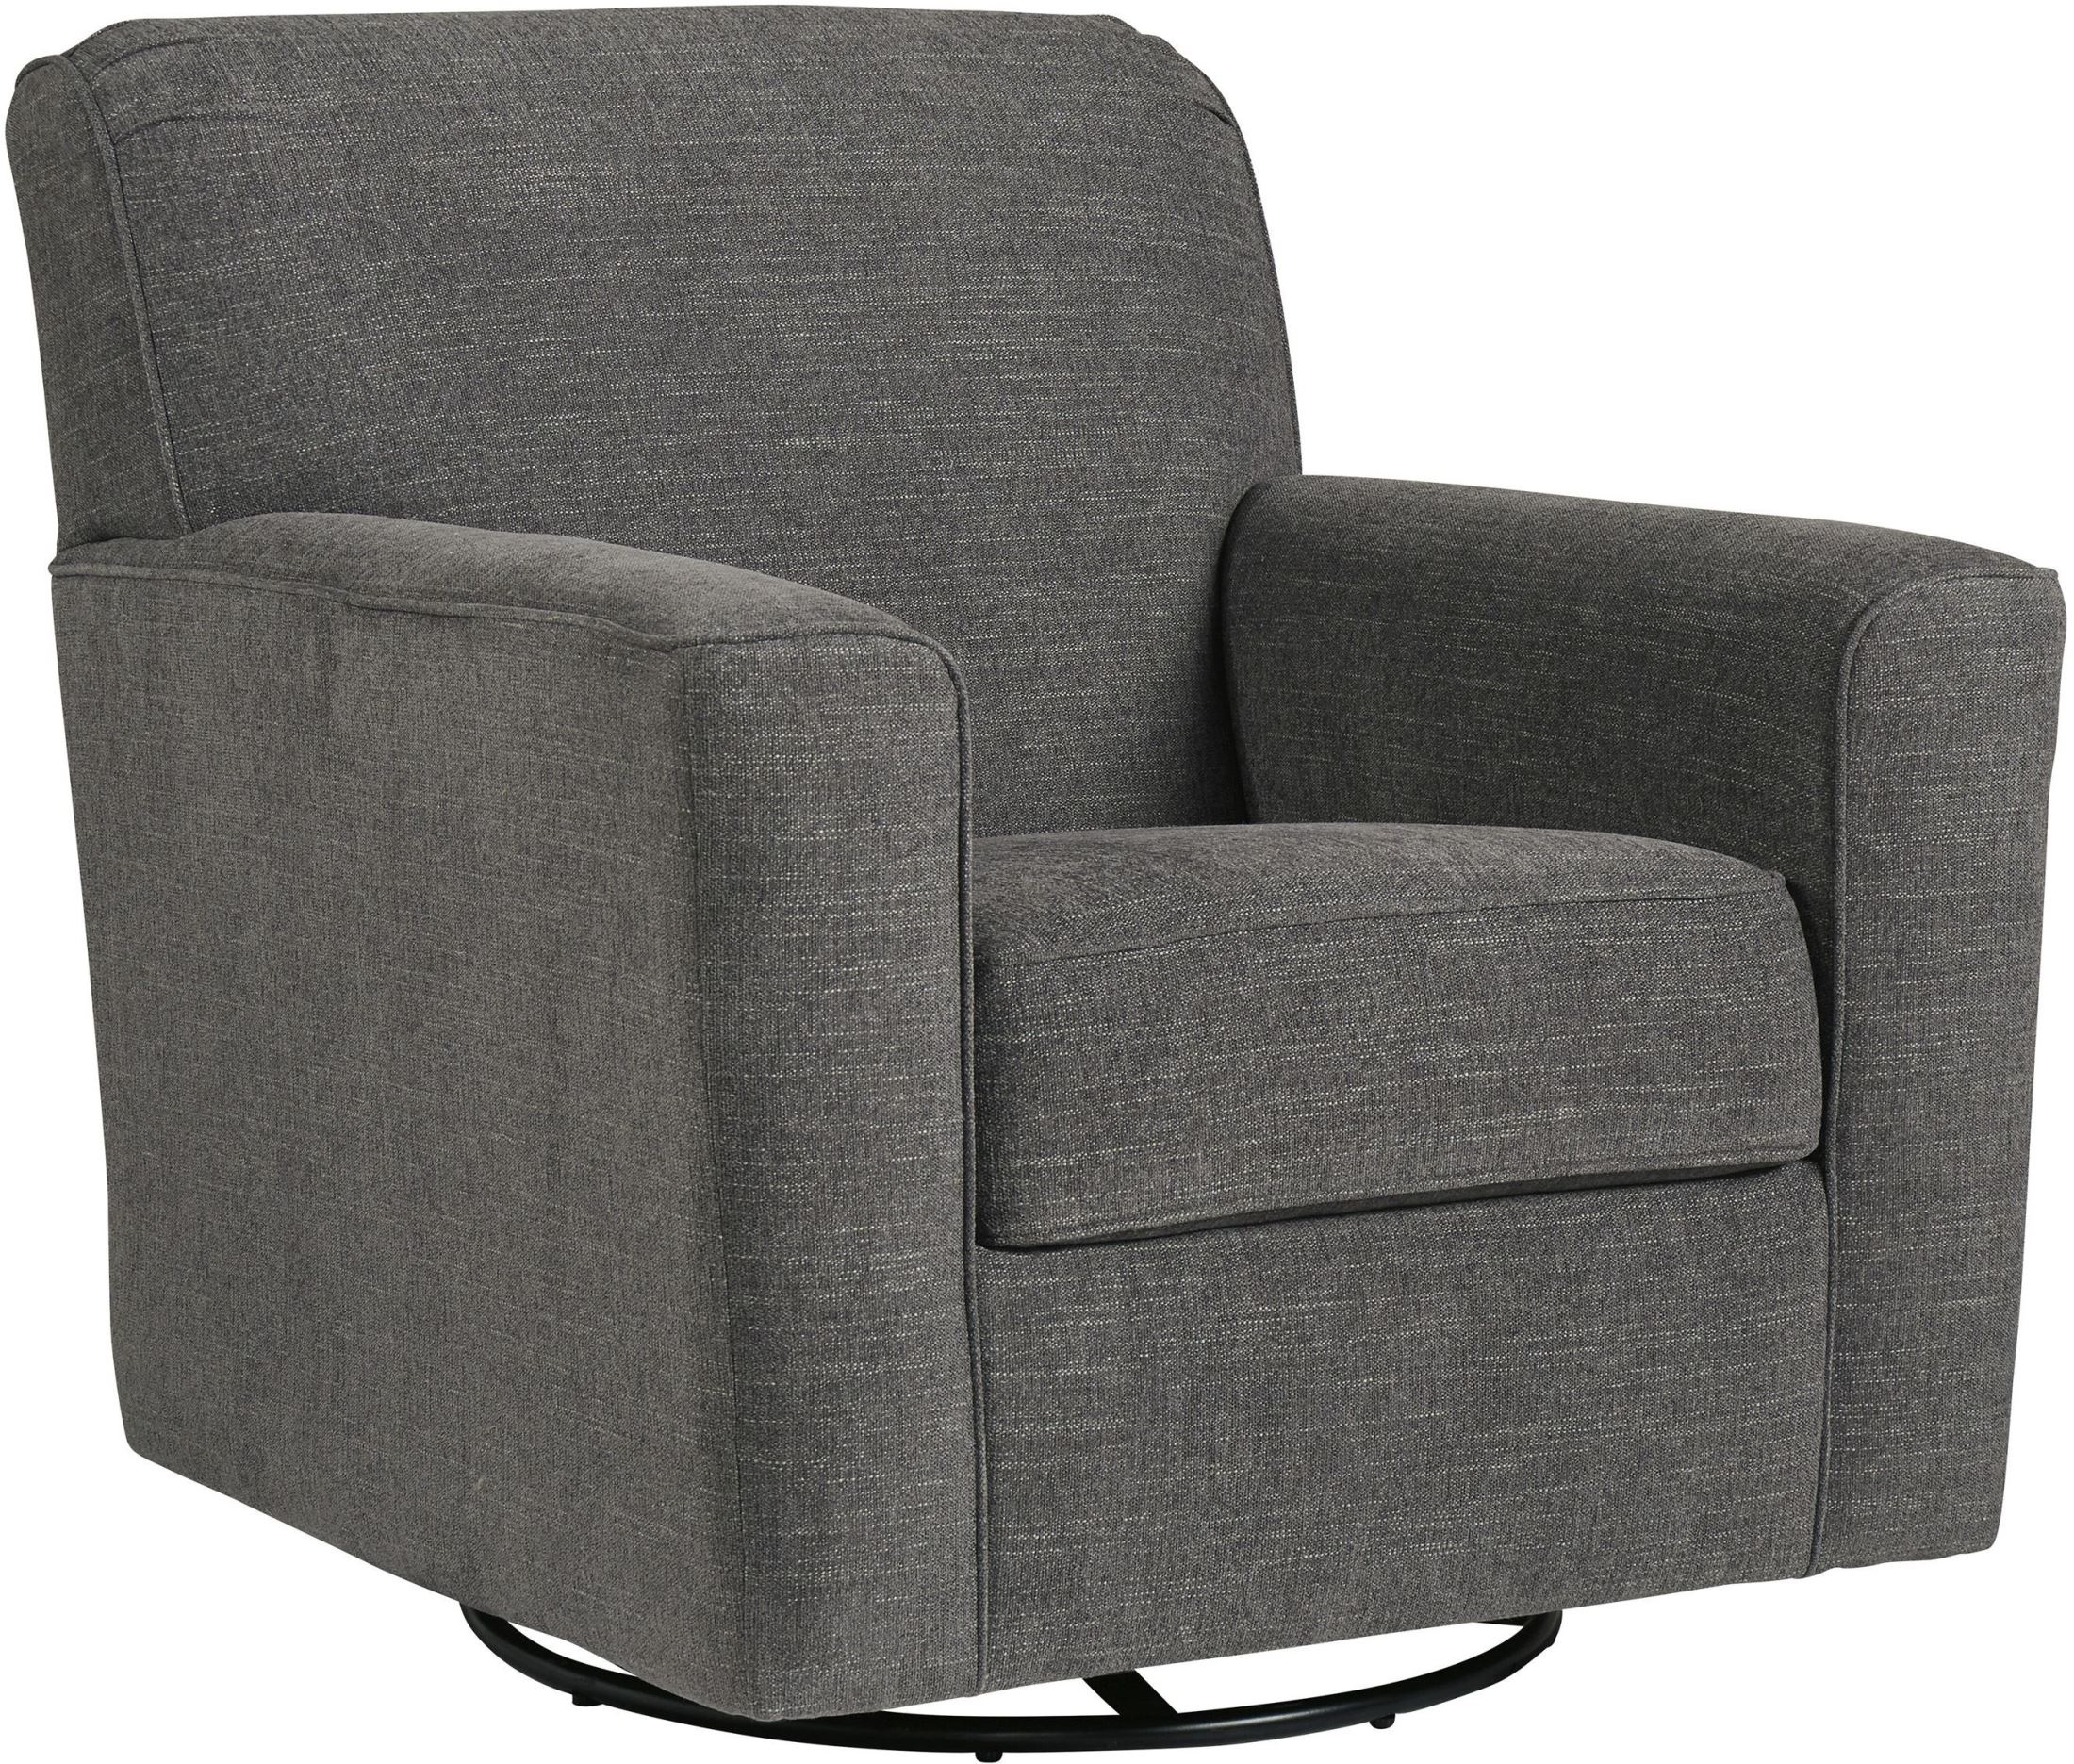 Signature Designashley Alcona Charcoal Swivel Glider Accent With Charcoal Swivel Chairs (View 7 of 20)